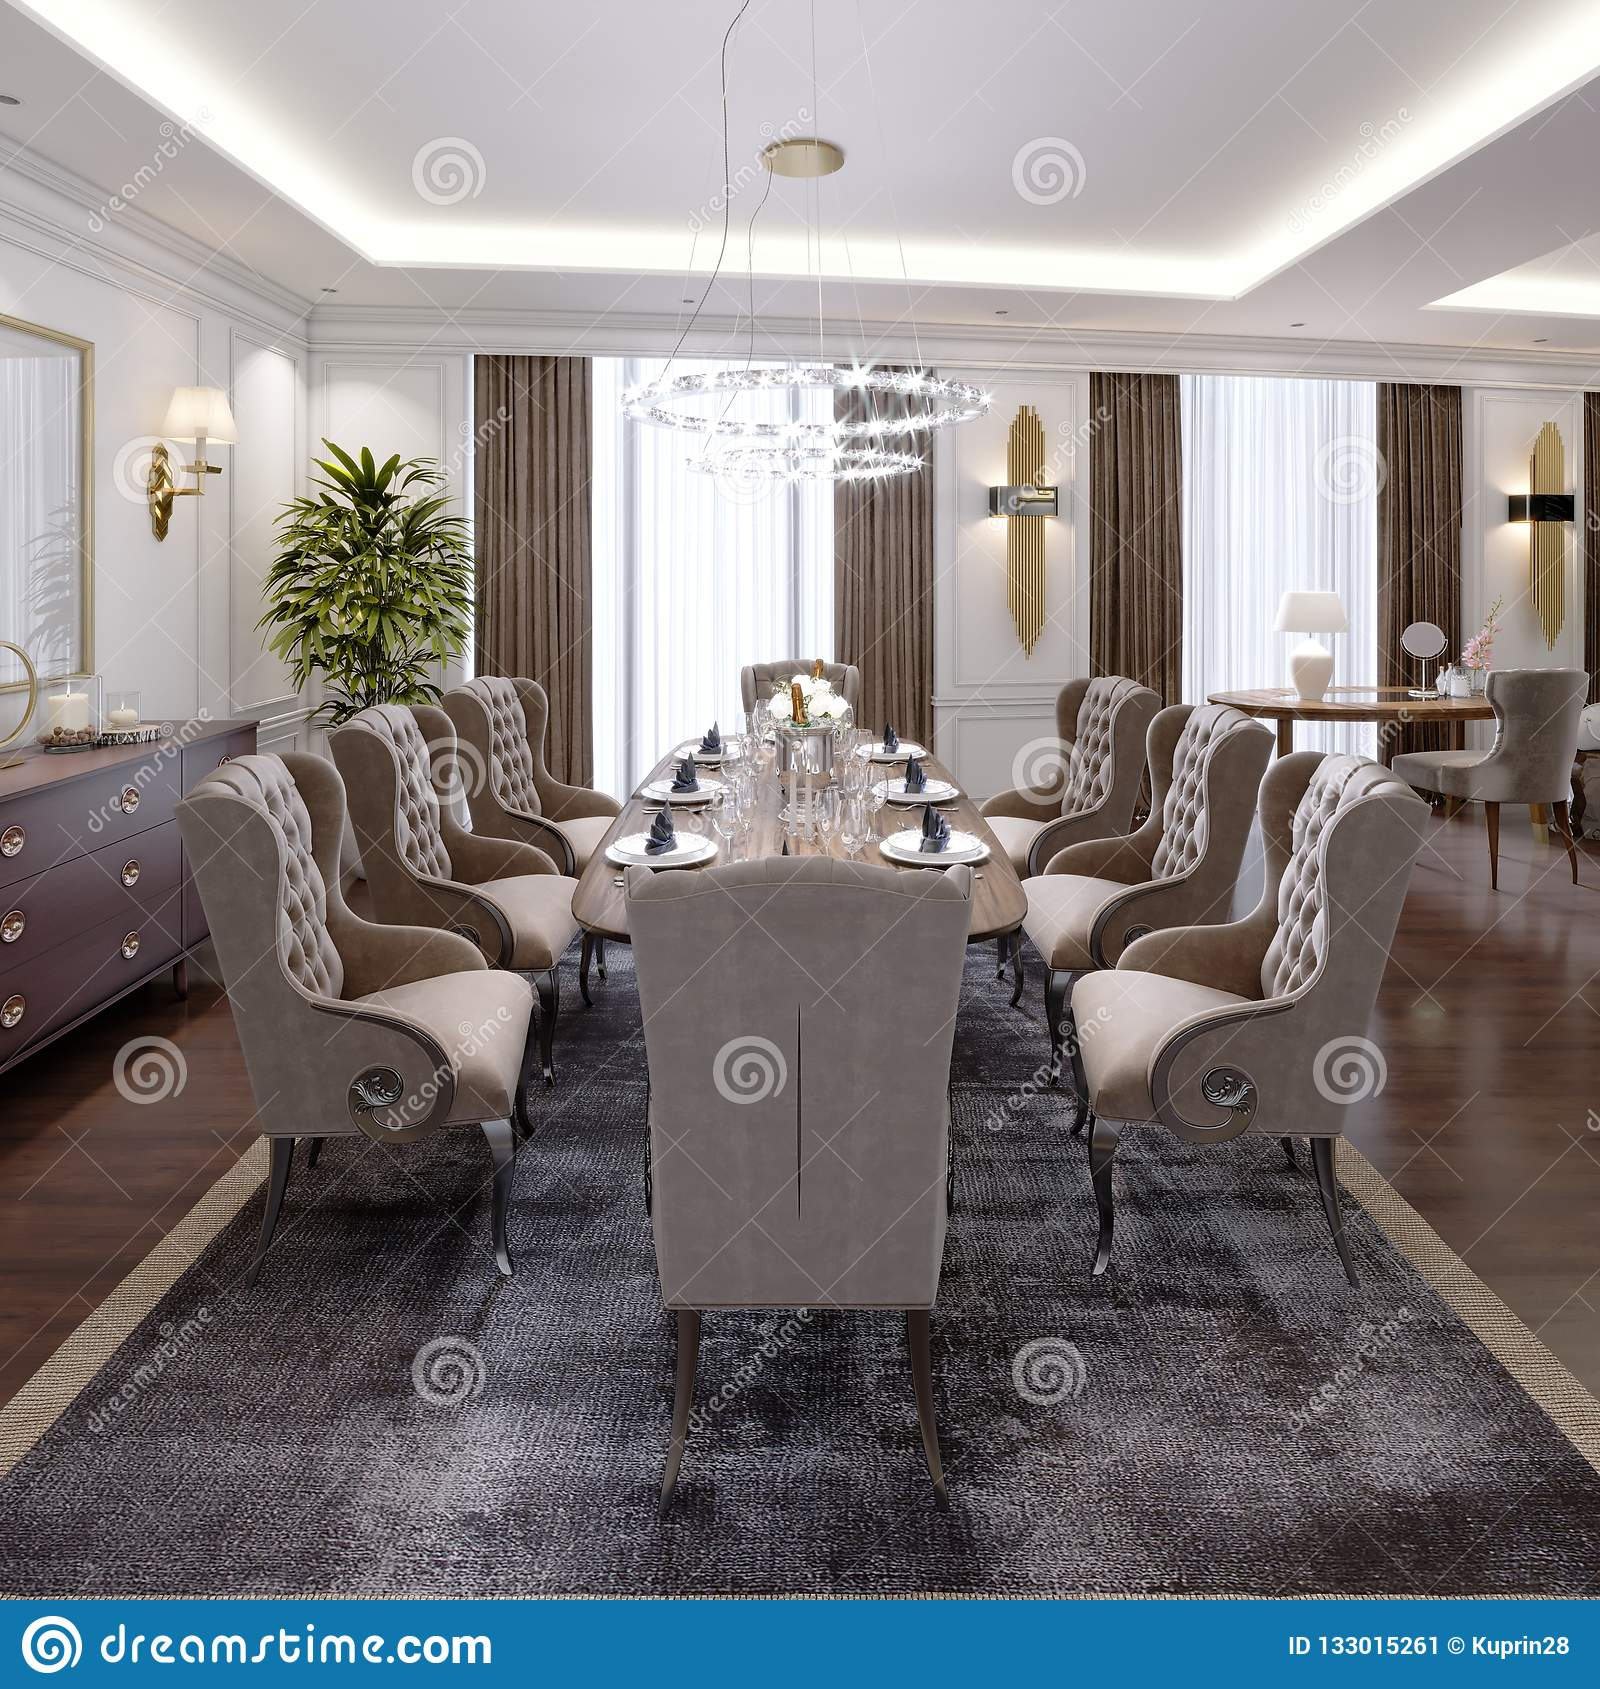 Large Dining Table For Eight People In The Dining Room